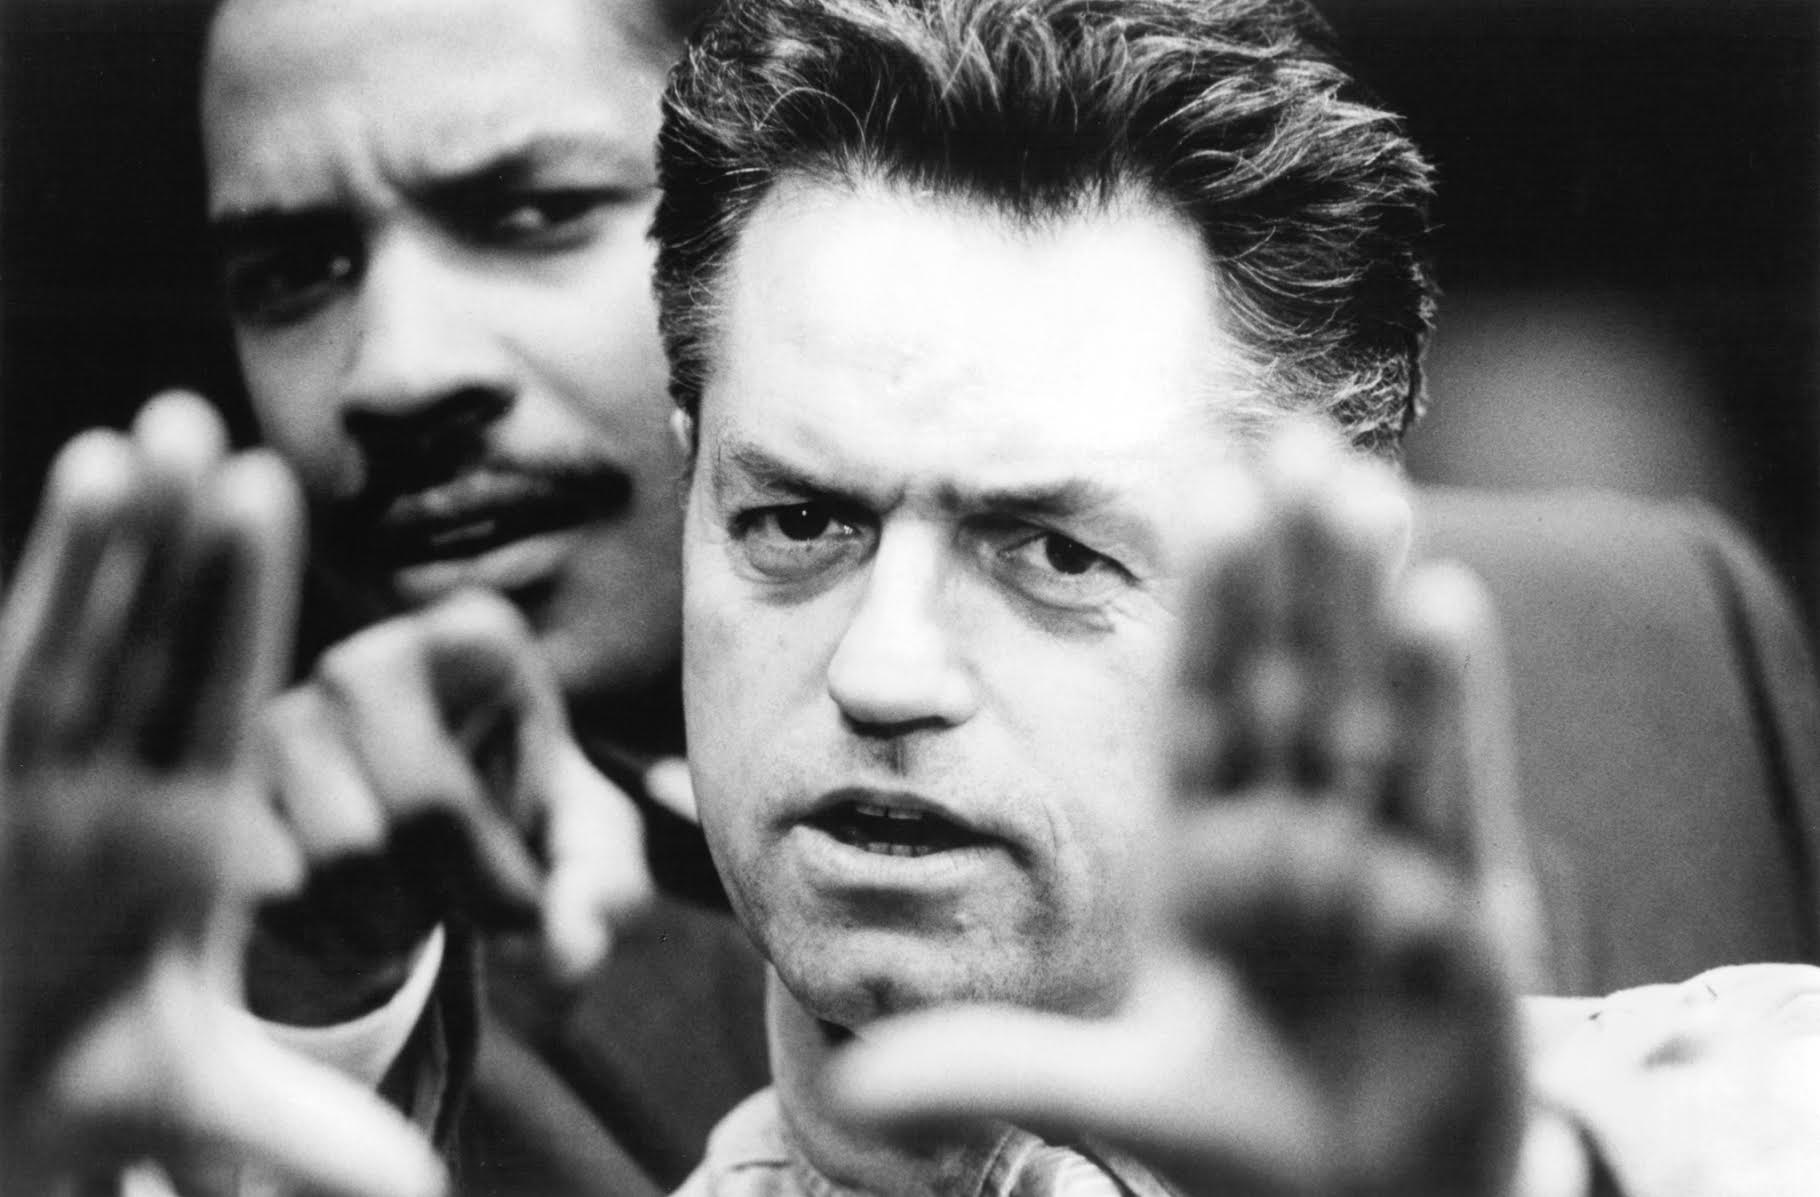 Jonathan+Demme - People We've Lost in 2017